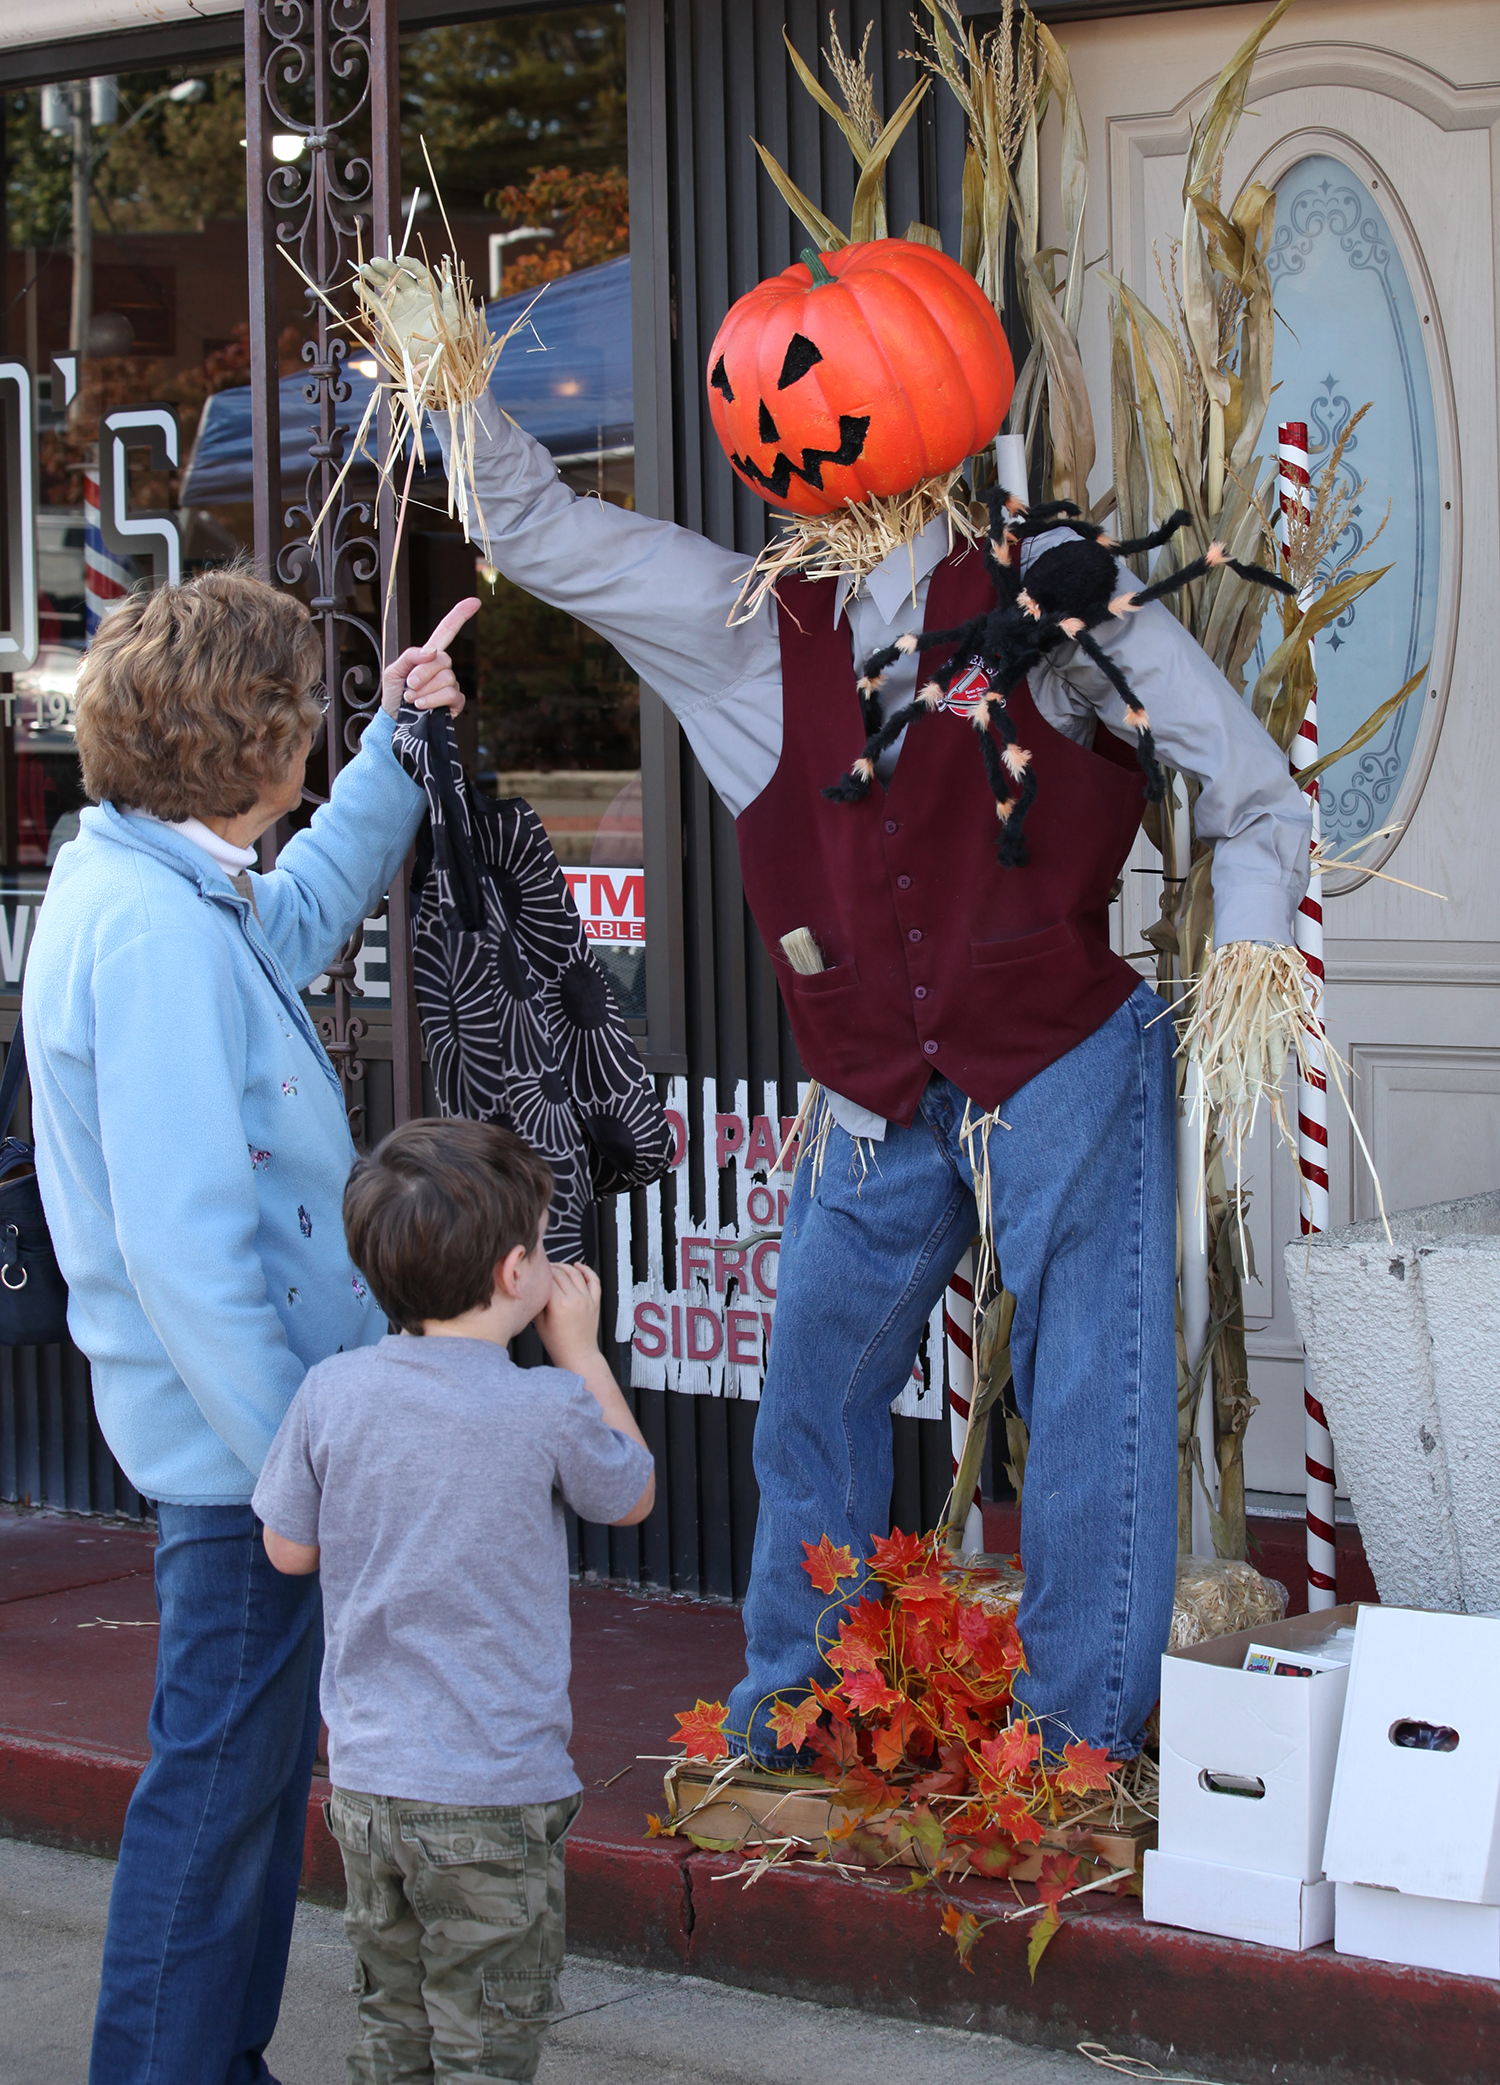 harvest fest woman pointing at pumkin man